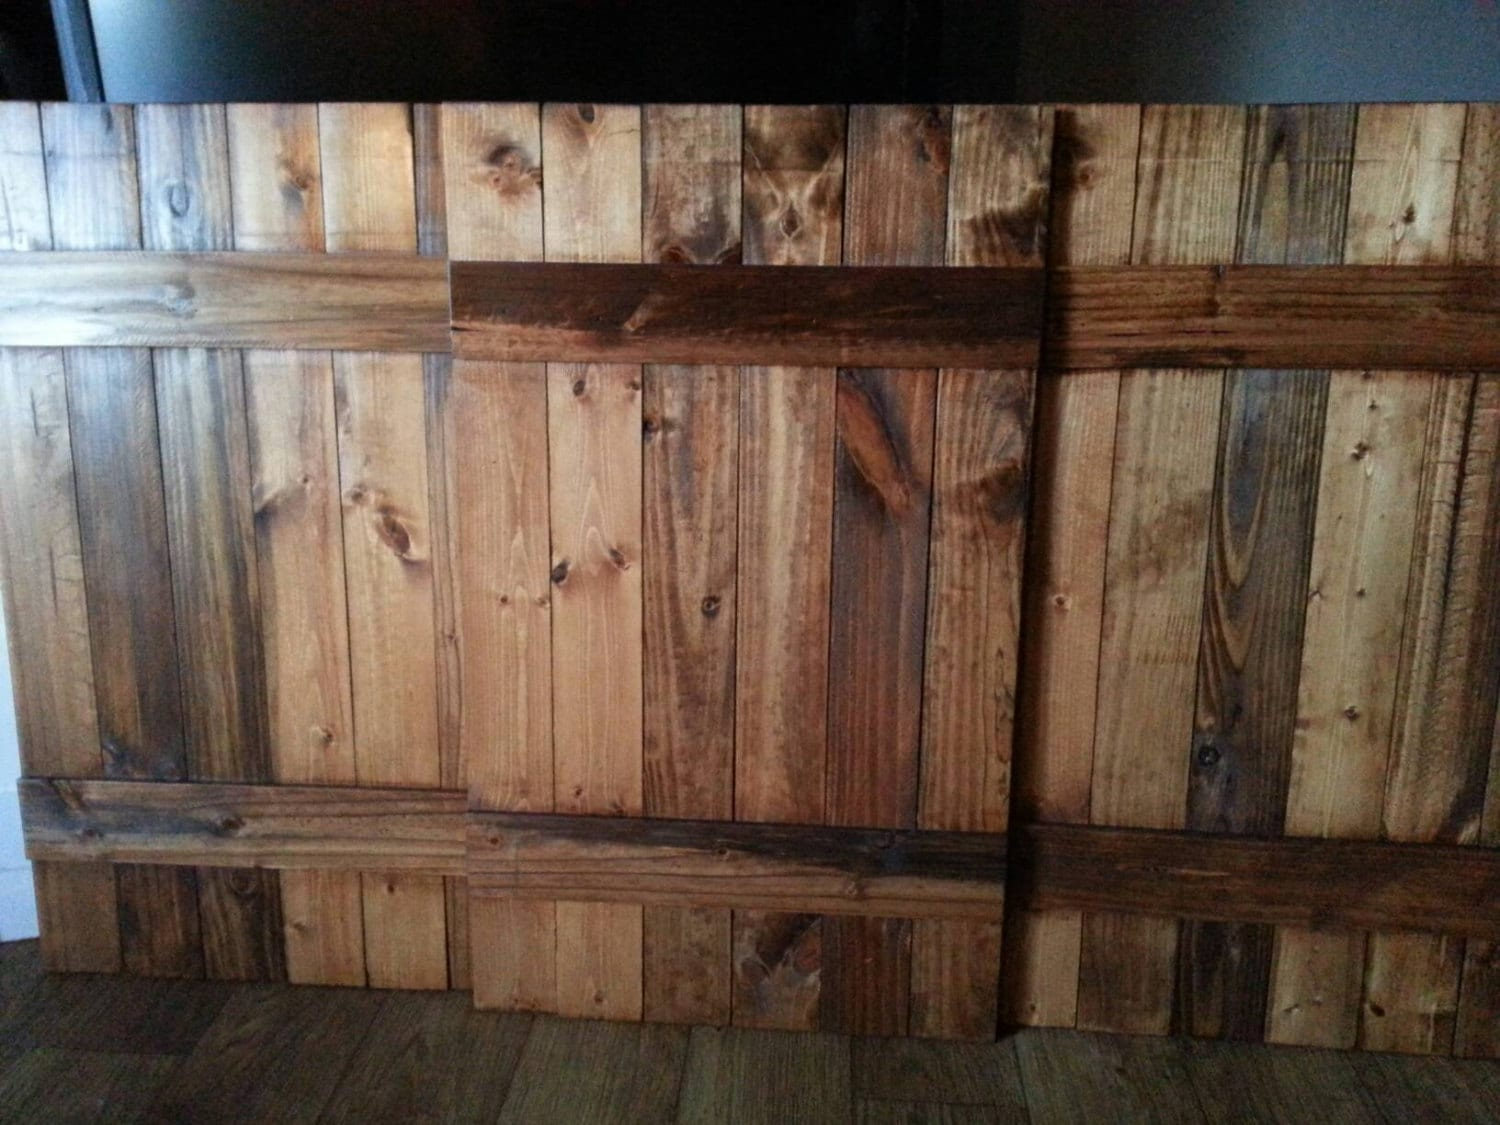 Rustic Wood King Headboard Shutter Set   Decorative Headboard Shutters   Interior  Shutters   Wide Shutters   Wooden Headboard   Farmhouse